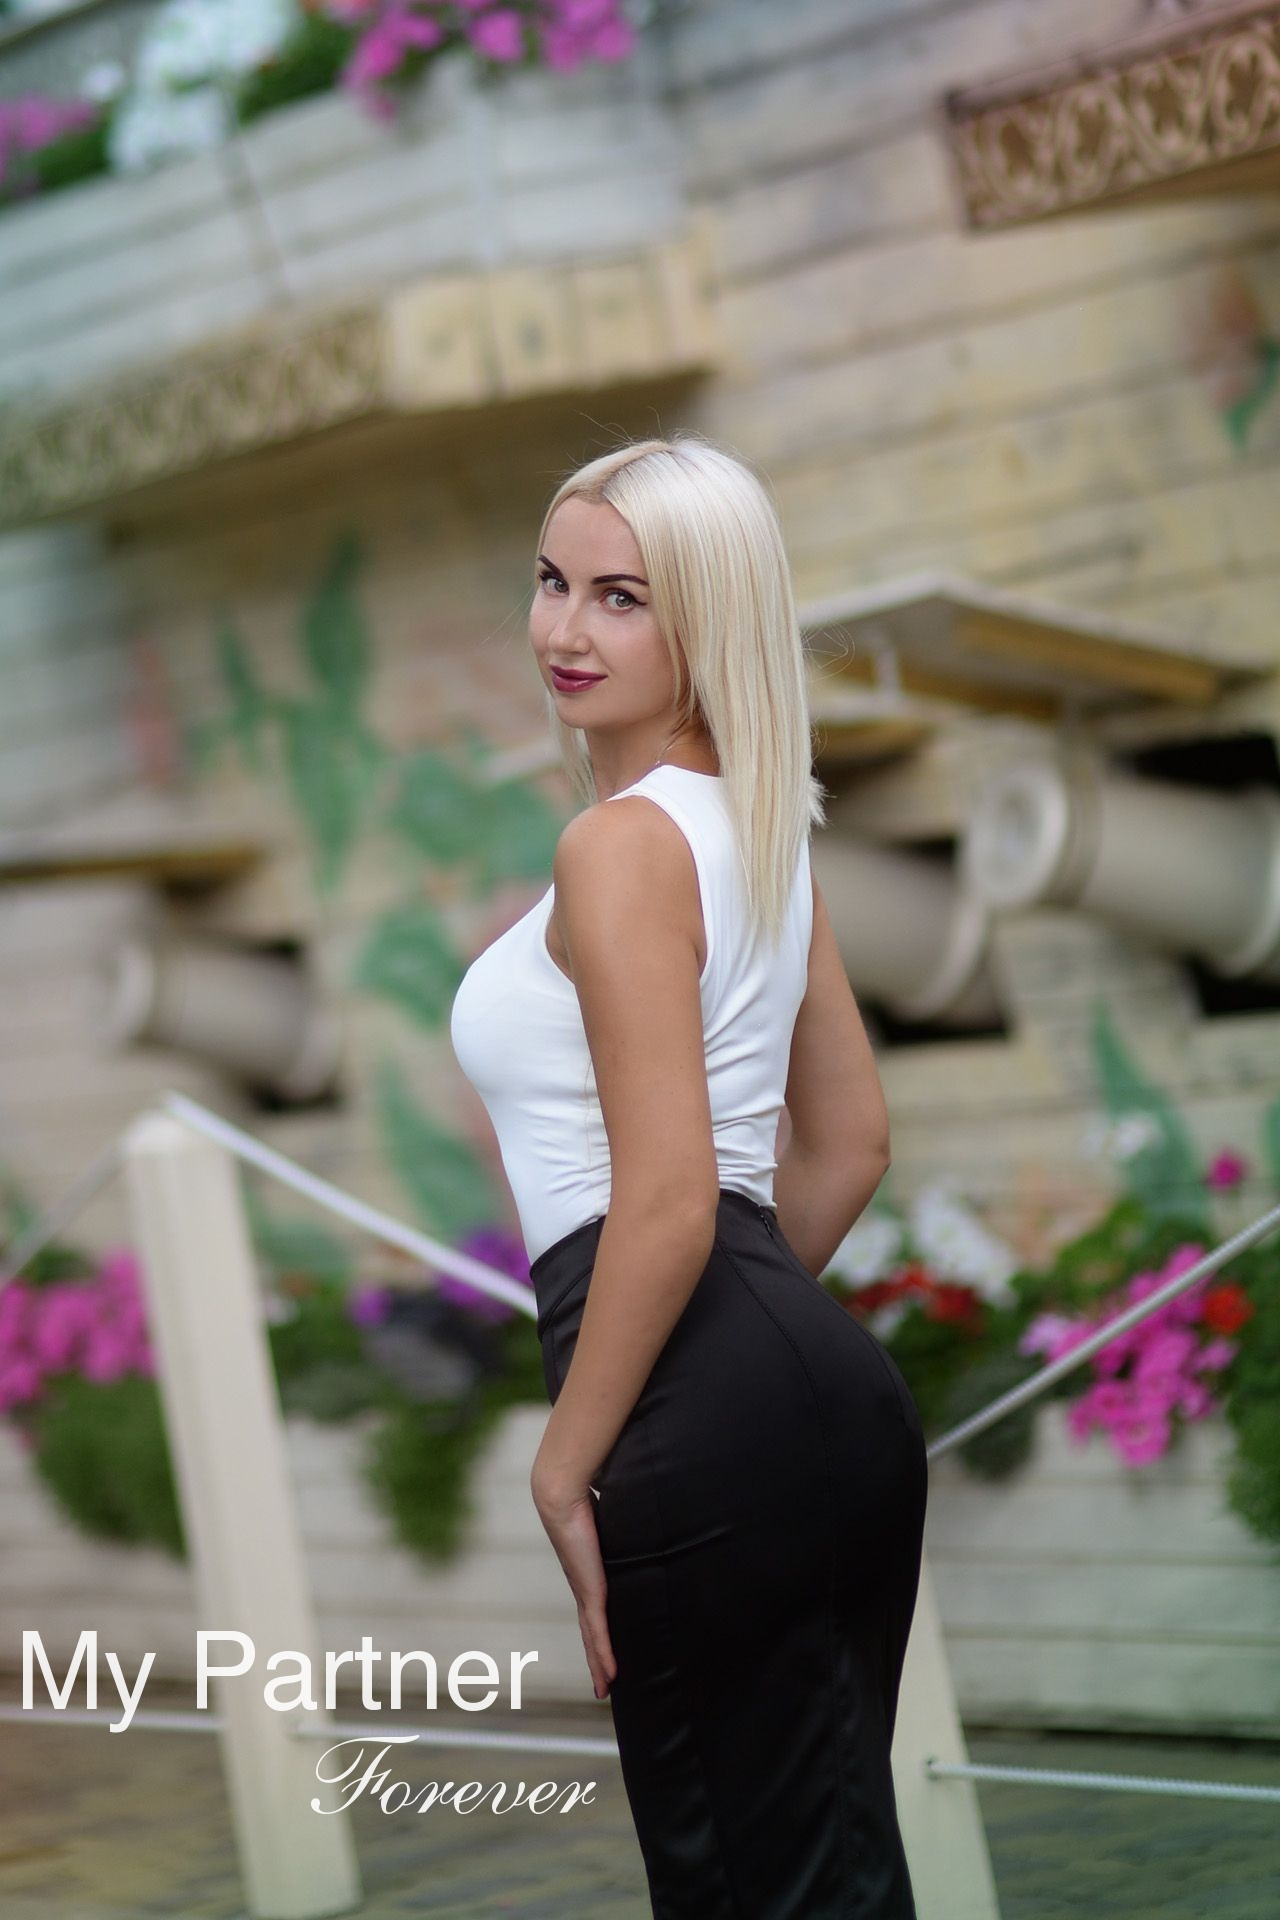 Dating Service to Meet Pretty Ukrainian Woman Marina from Kharkov, Ukraine